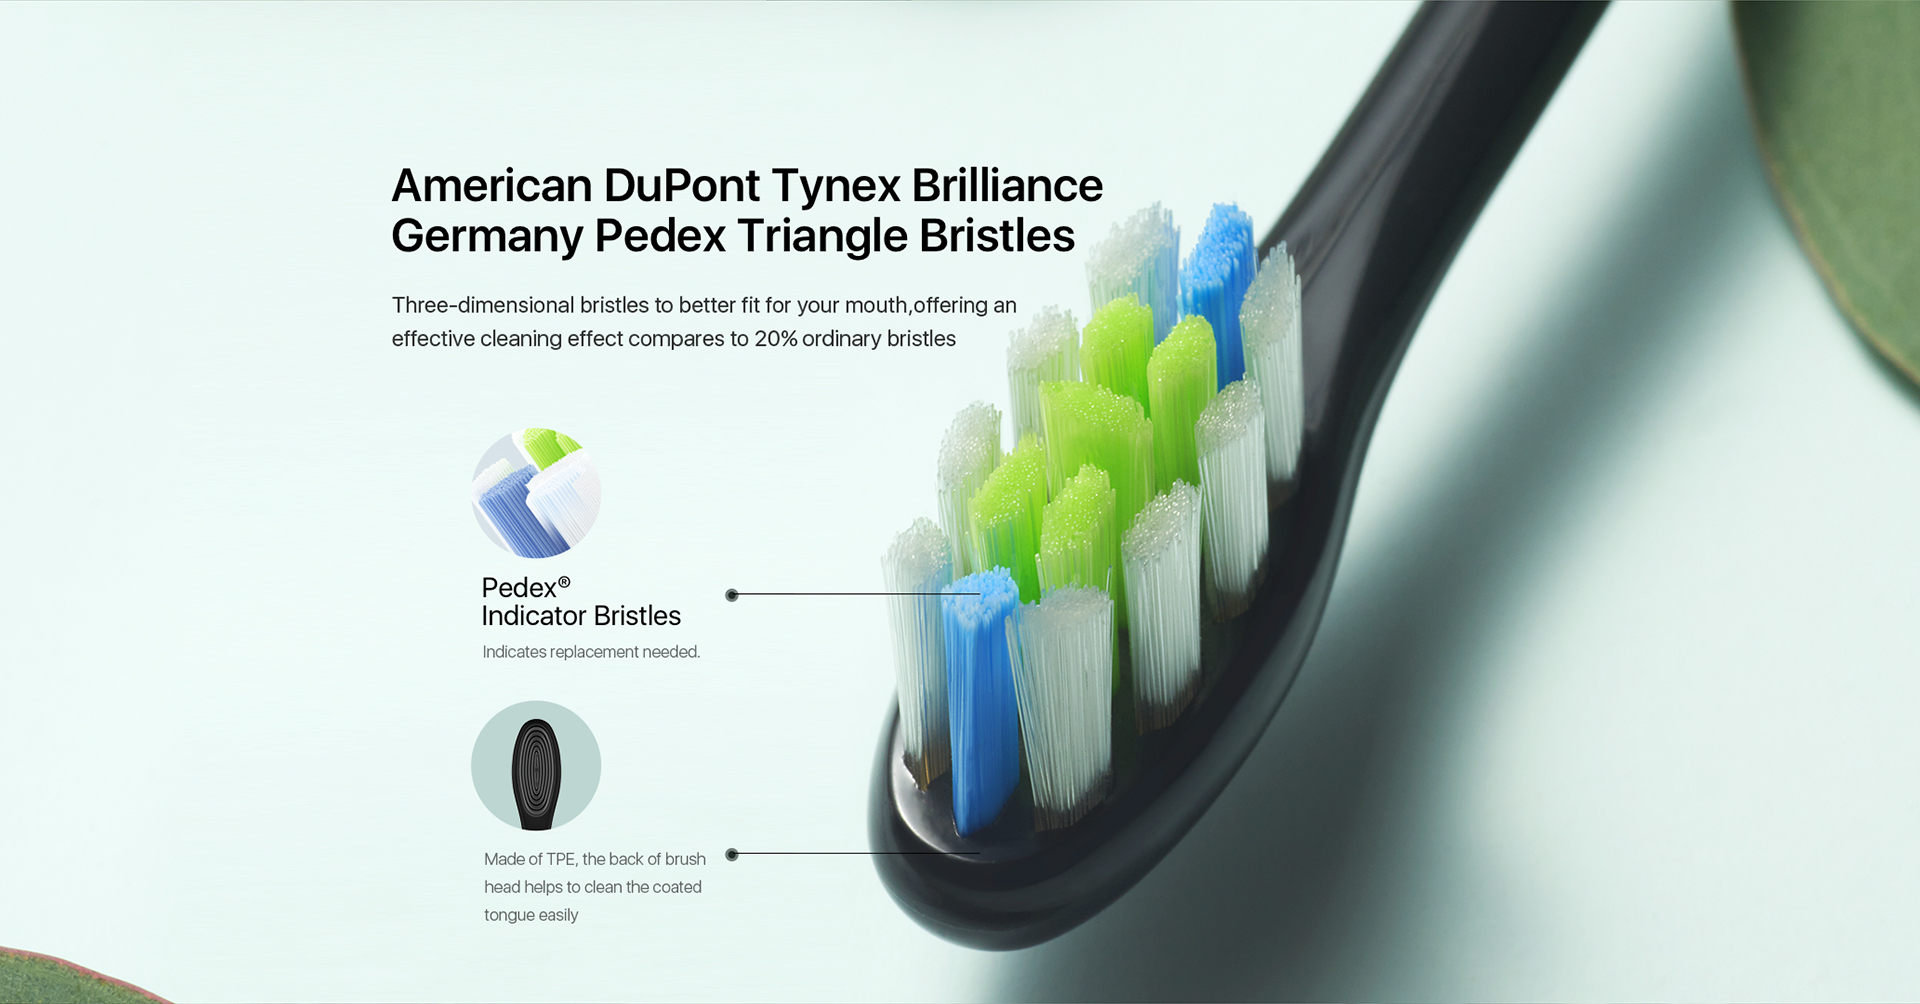 American DuPont Tynex Brilliance Germany Pedex Triangle Bristles